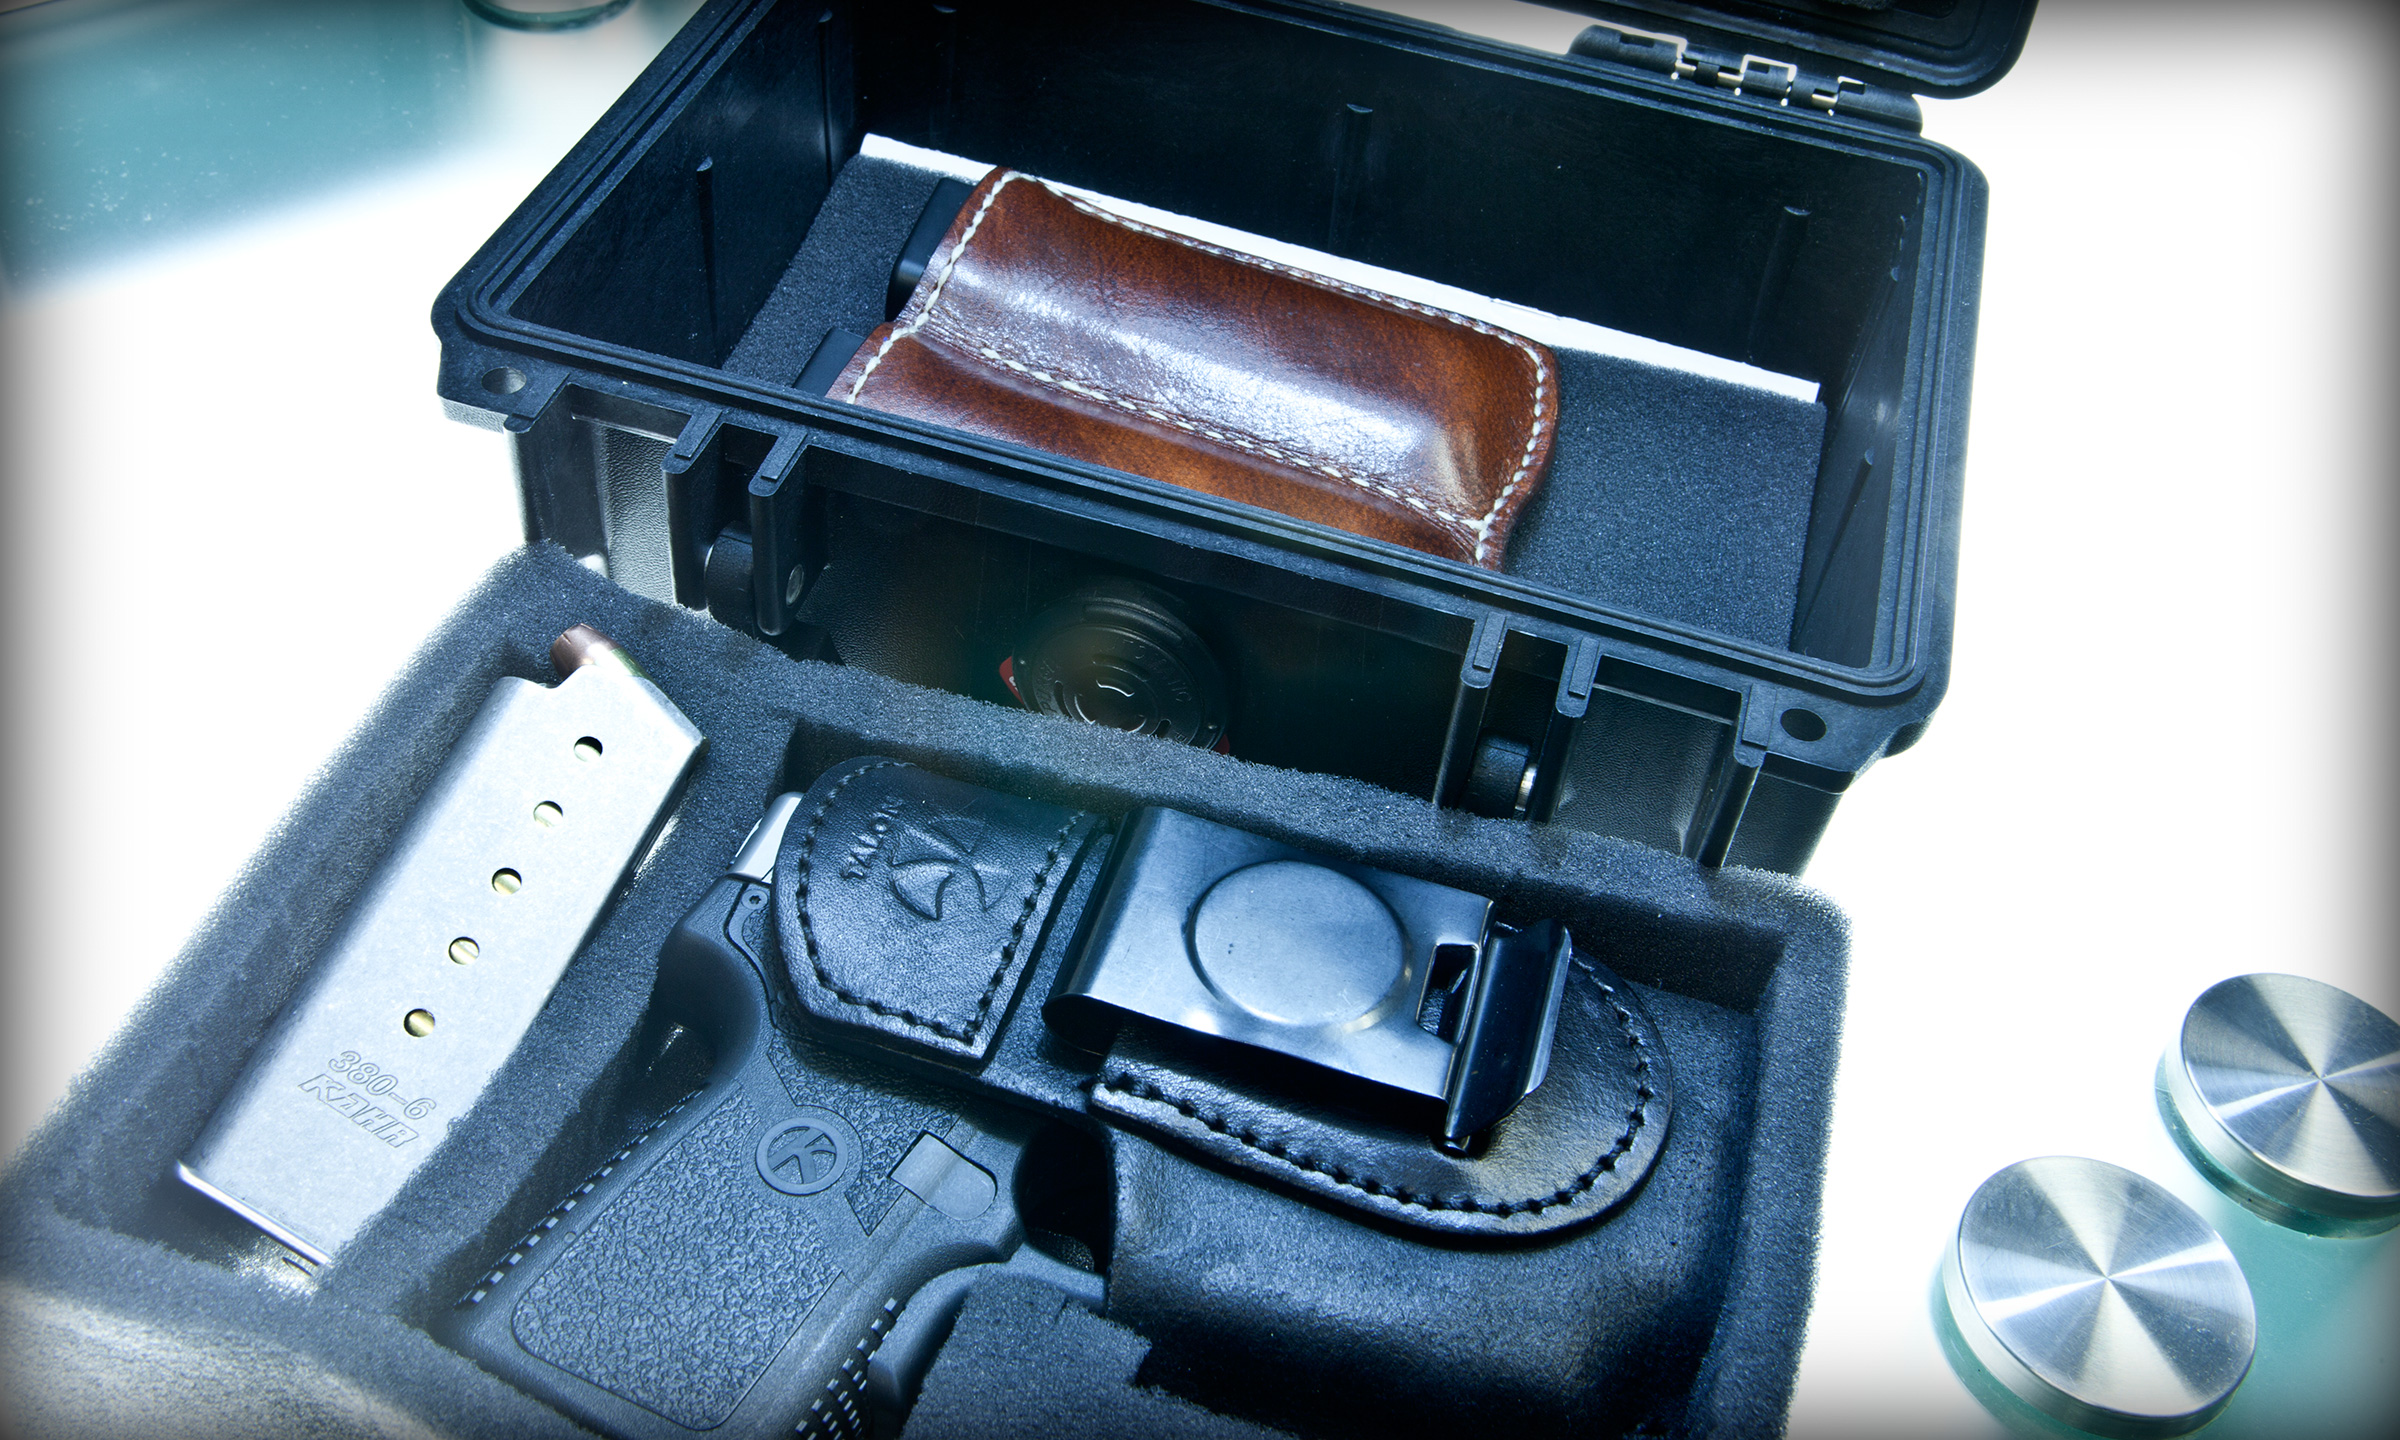 Kahr P380 in pelican case